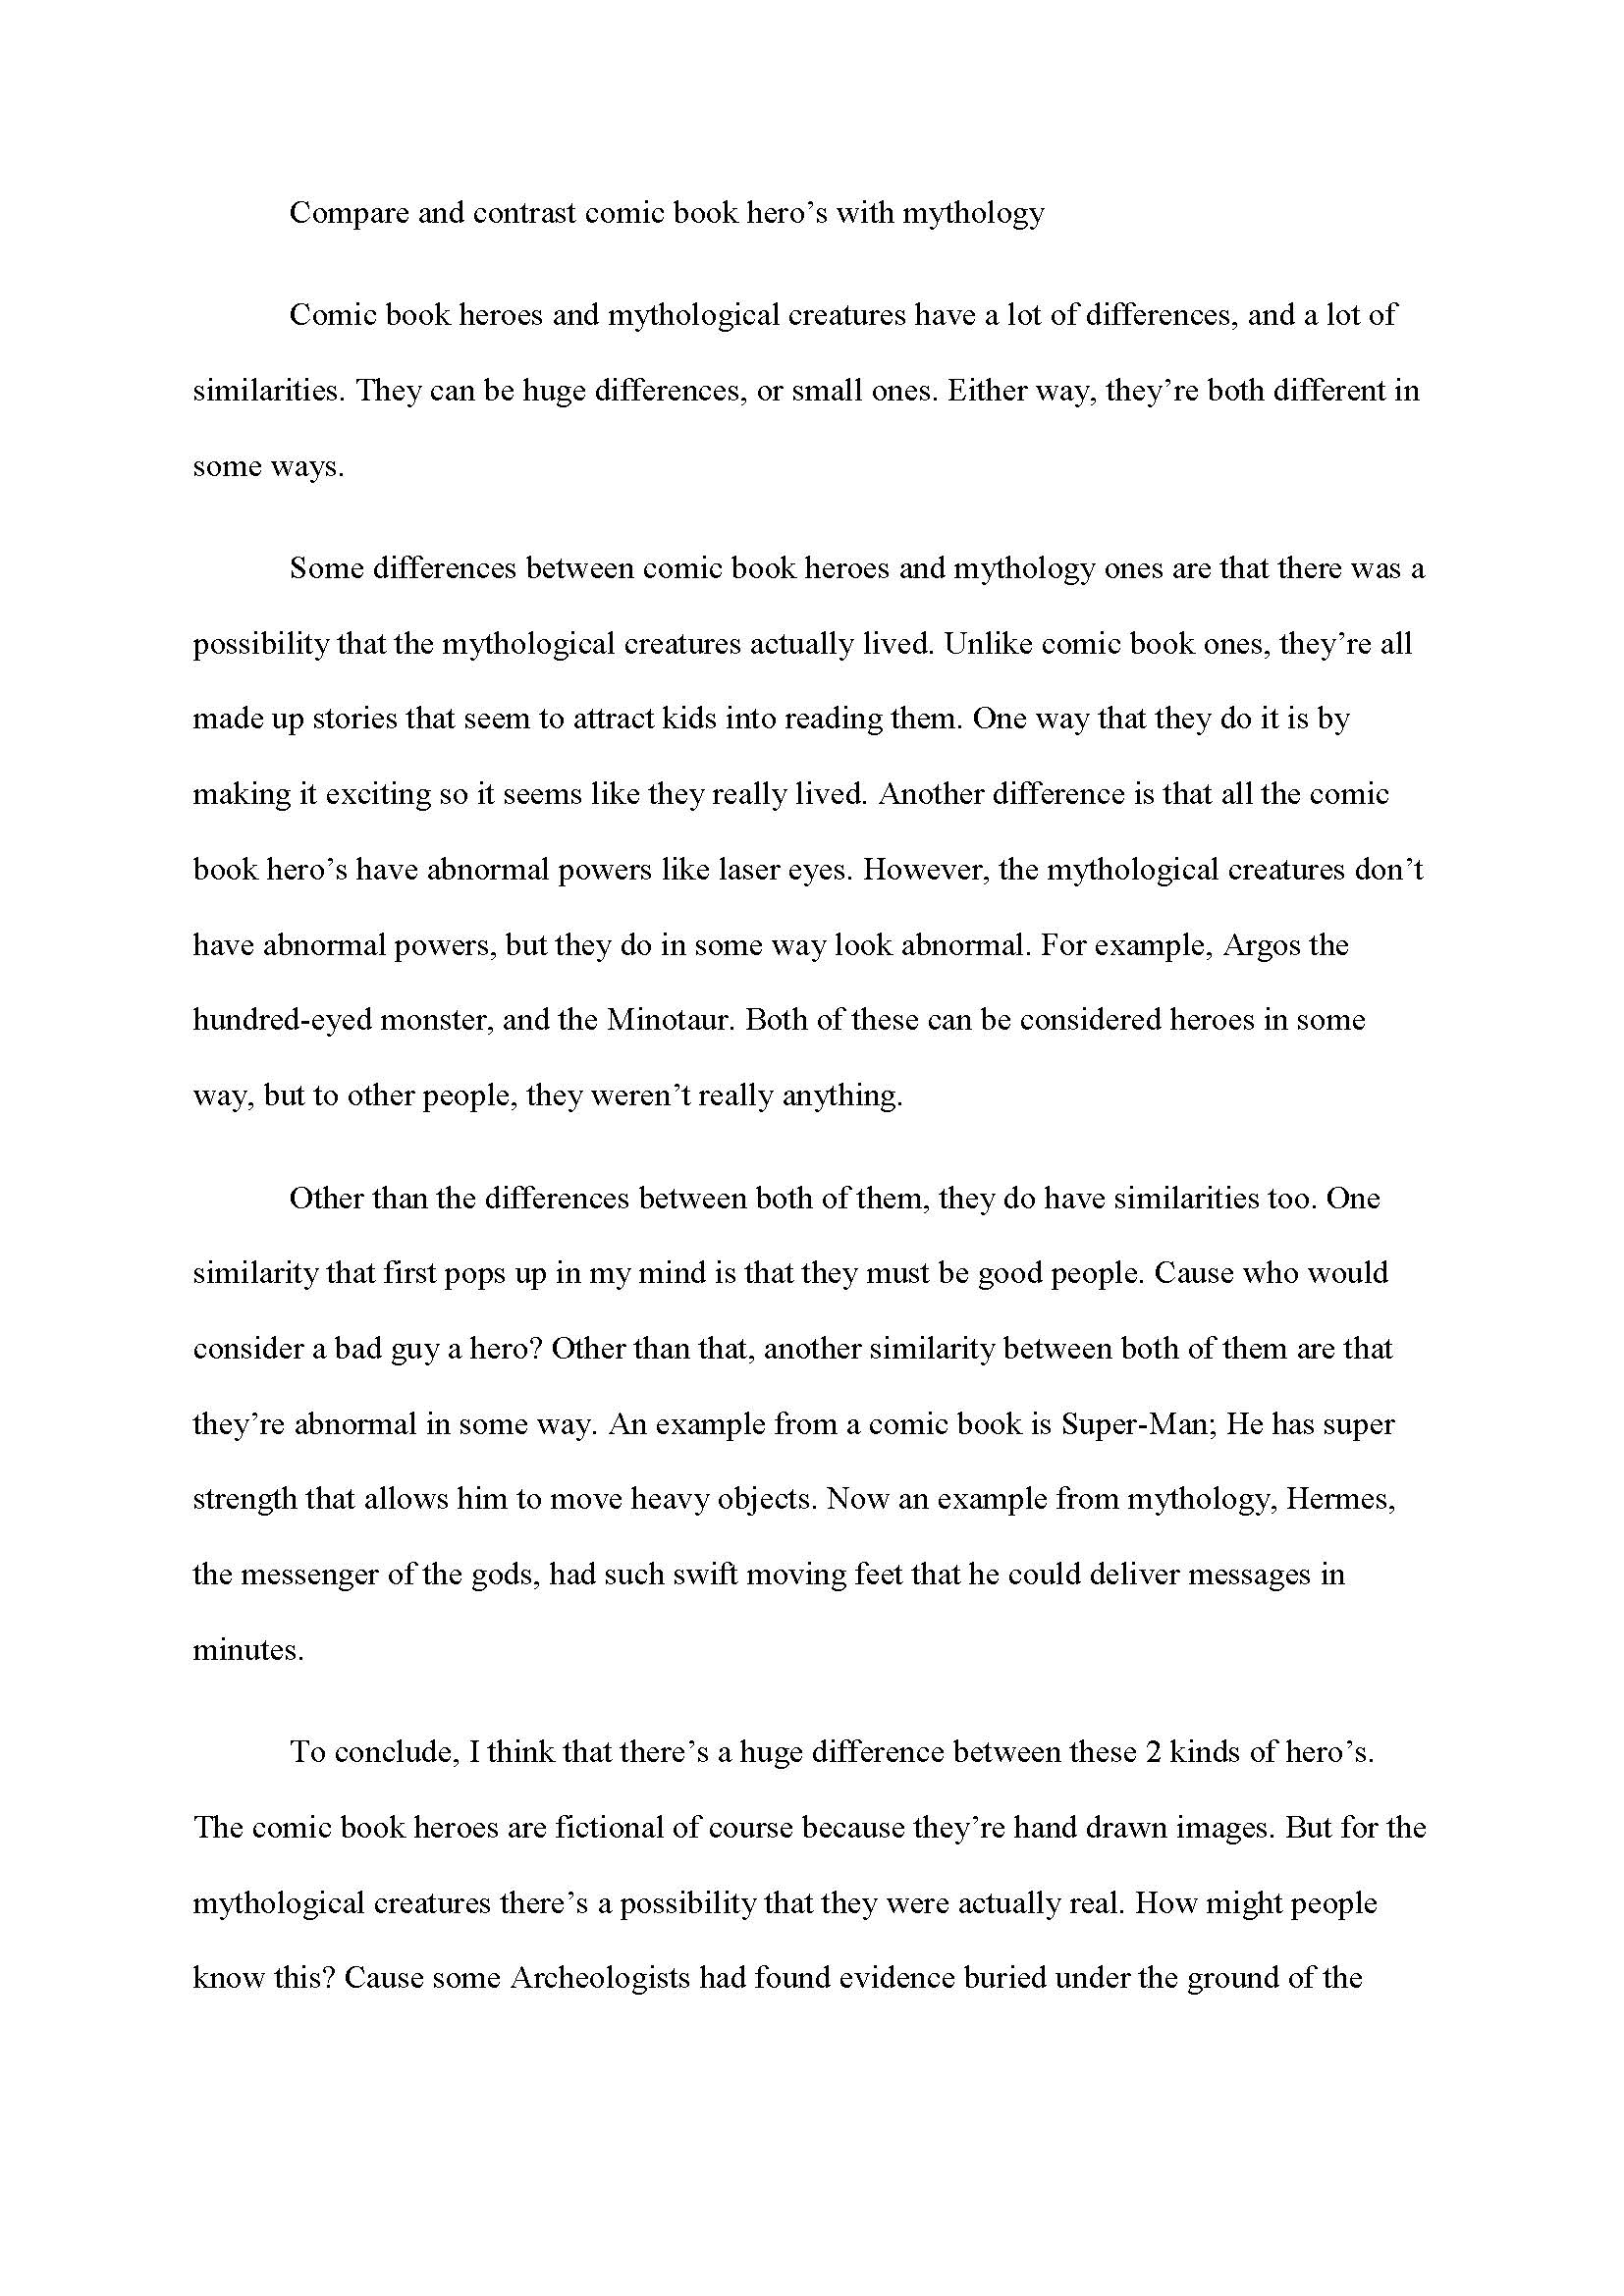 006 Compare And Contrast Essay Conclusion Example Staggering High School College Full